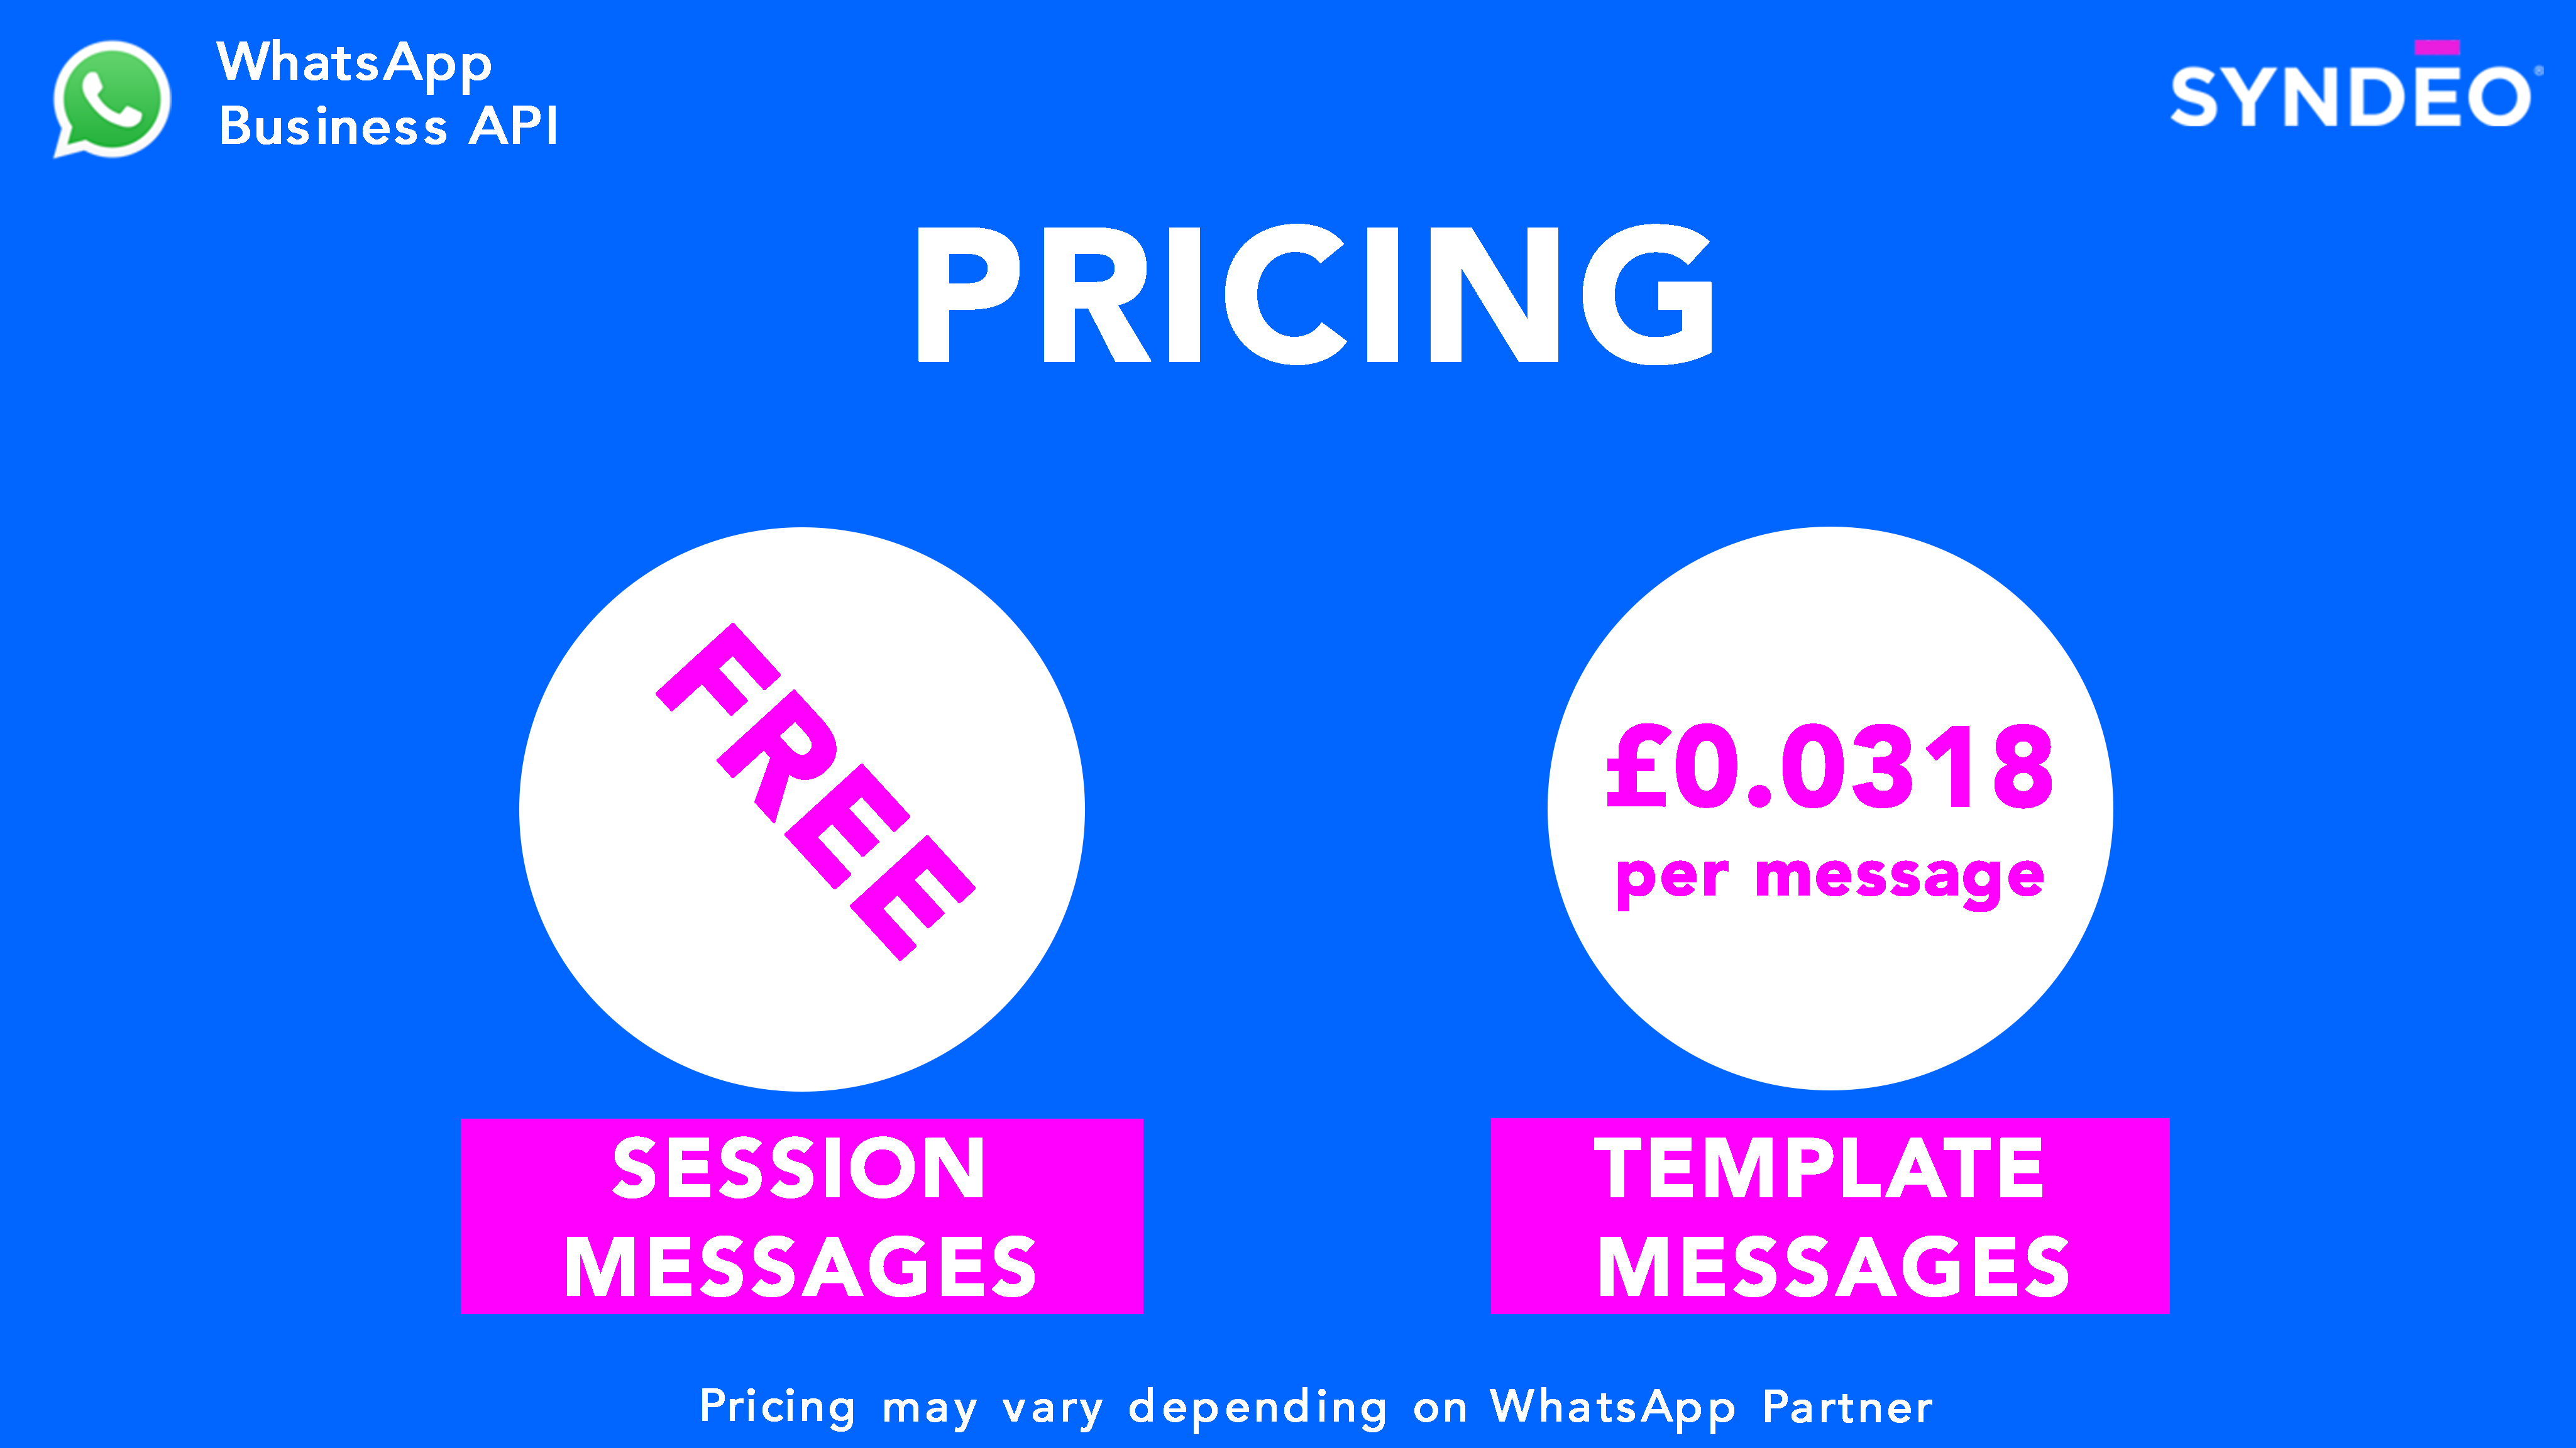 WhatsApp Pricing